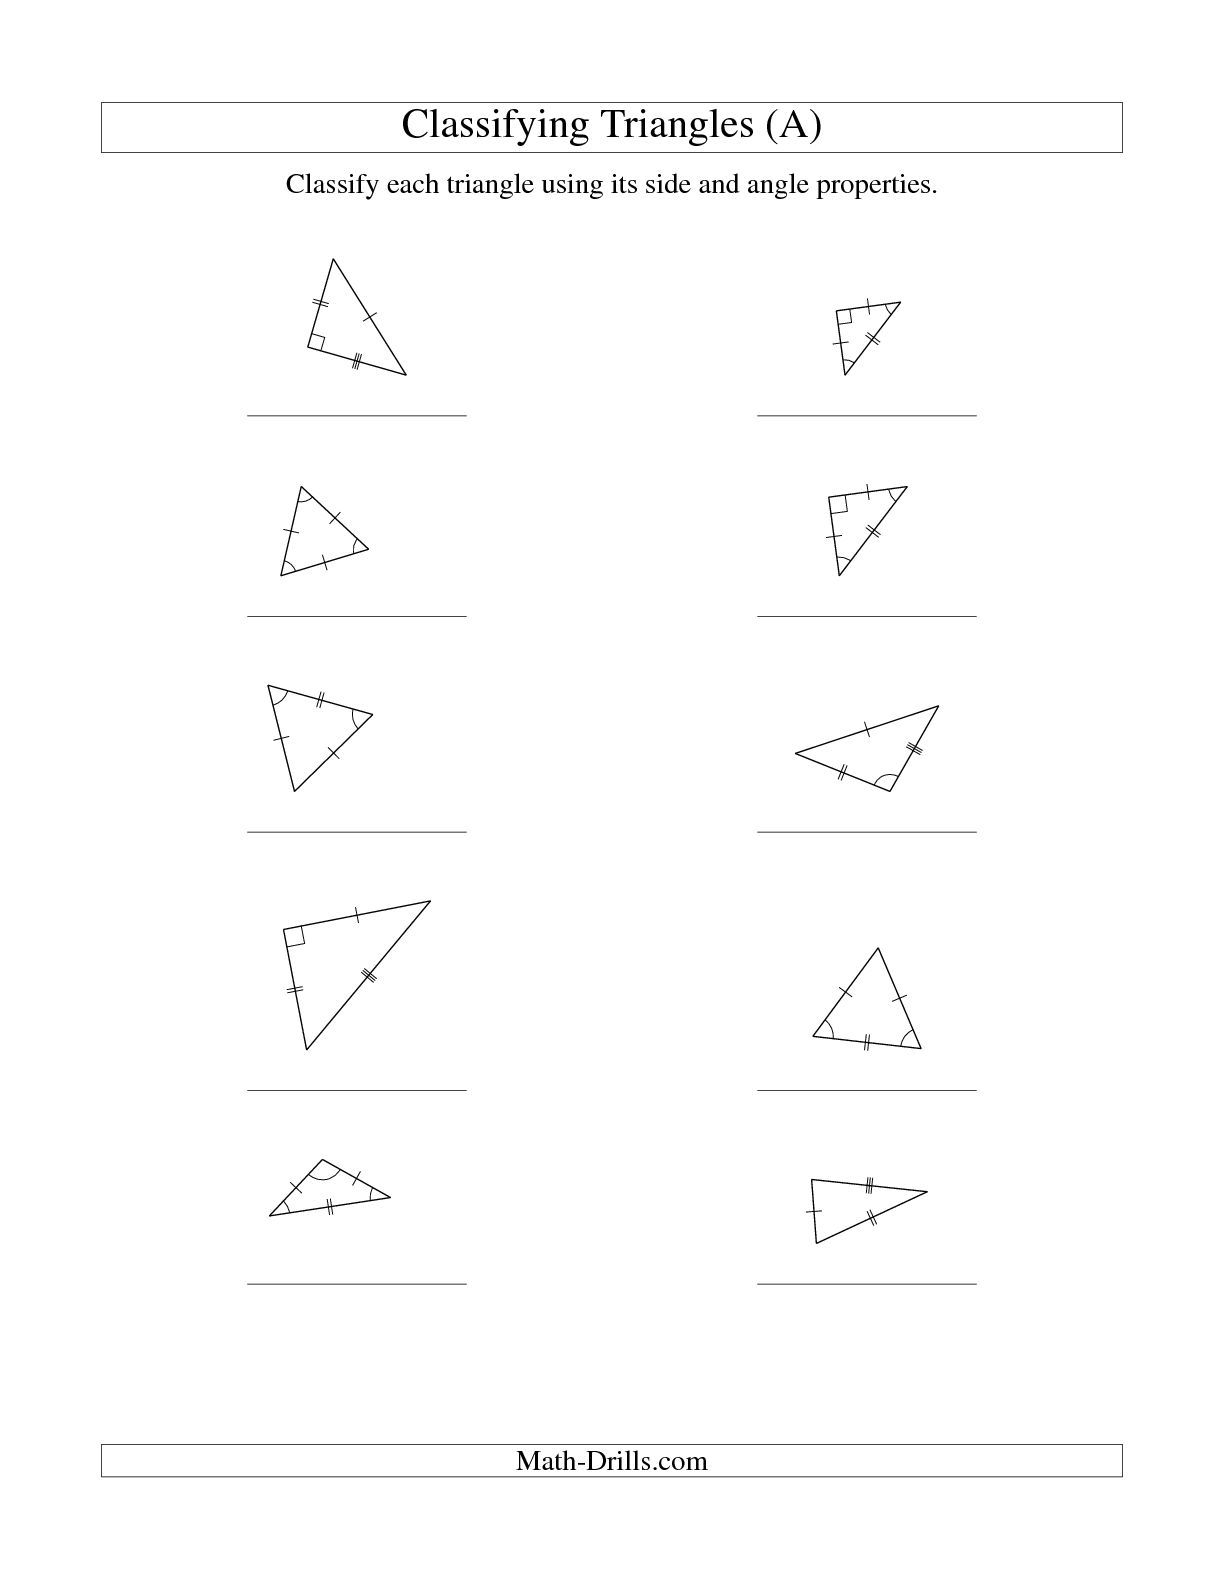 The Classifying Triangles By Angle And Side Properties A Math Worksheet From The Geometry